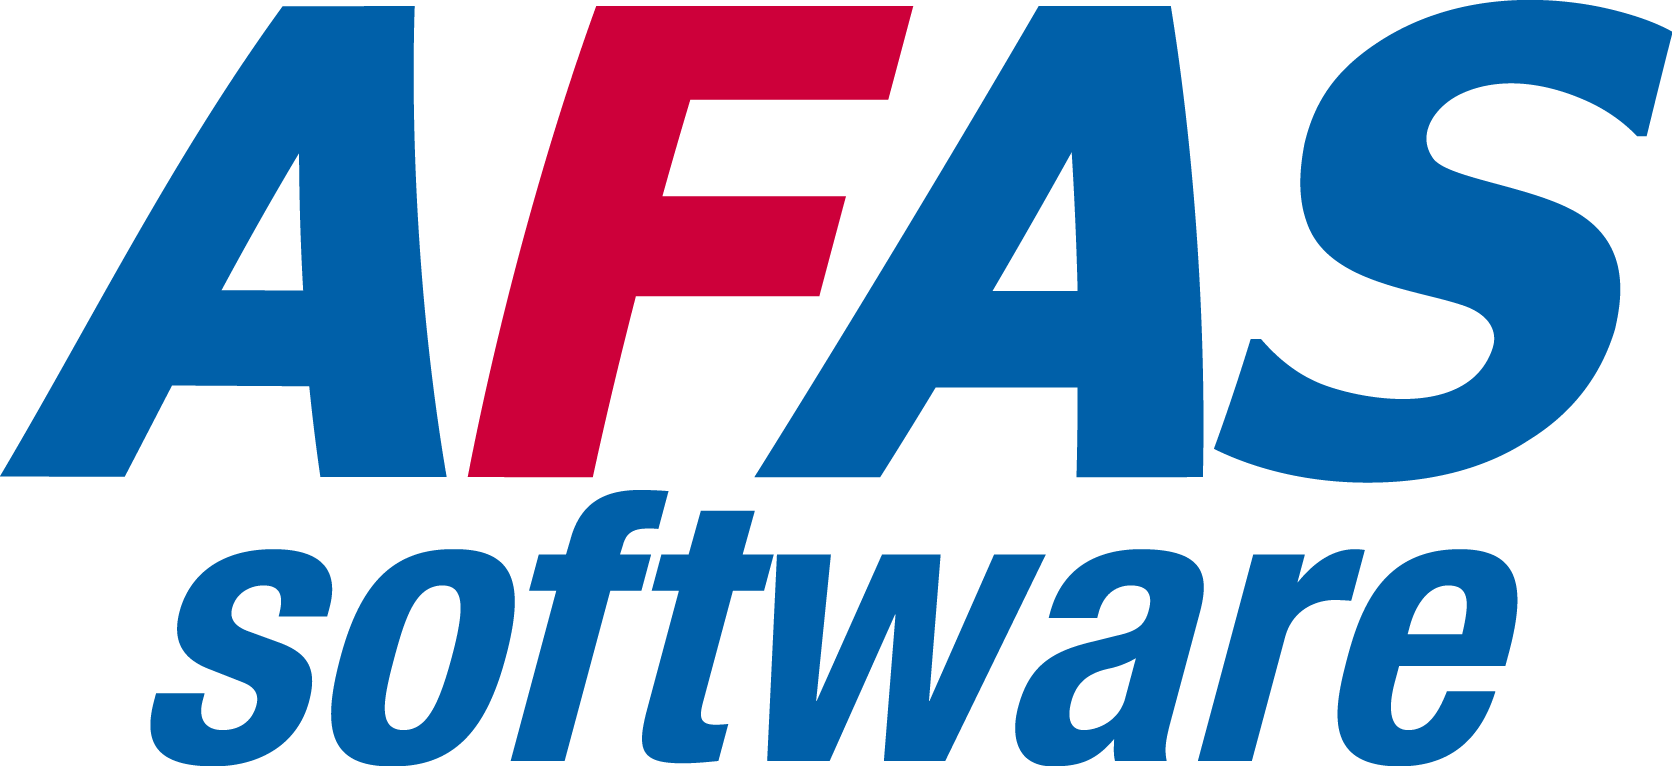 Documizers AFAS Software logo